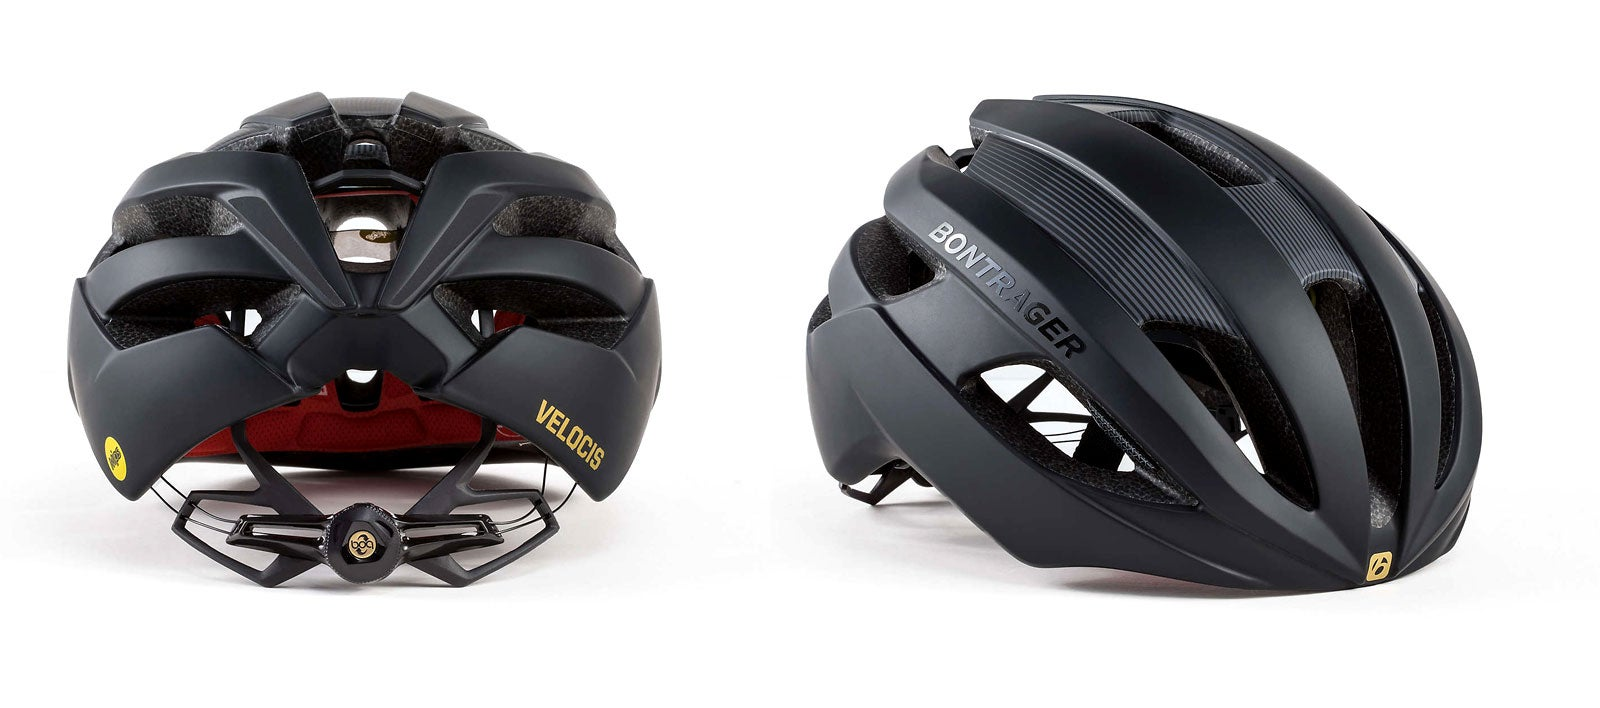 speical offer sale uk good service The 7 Best Road Cycling Helmets of 2018 - Peloton Magazine